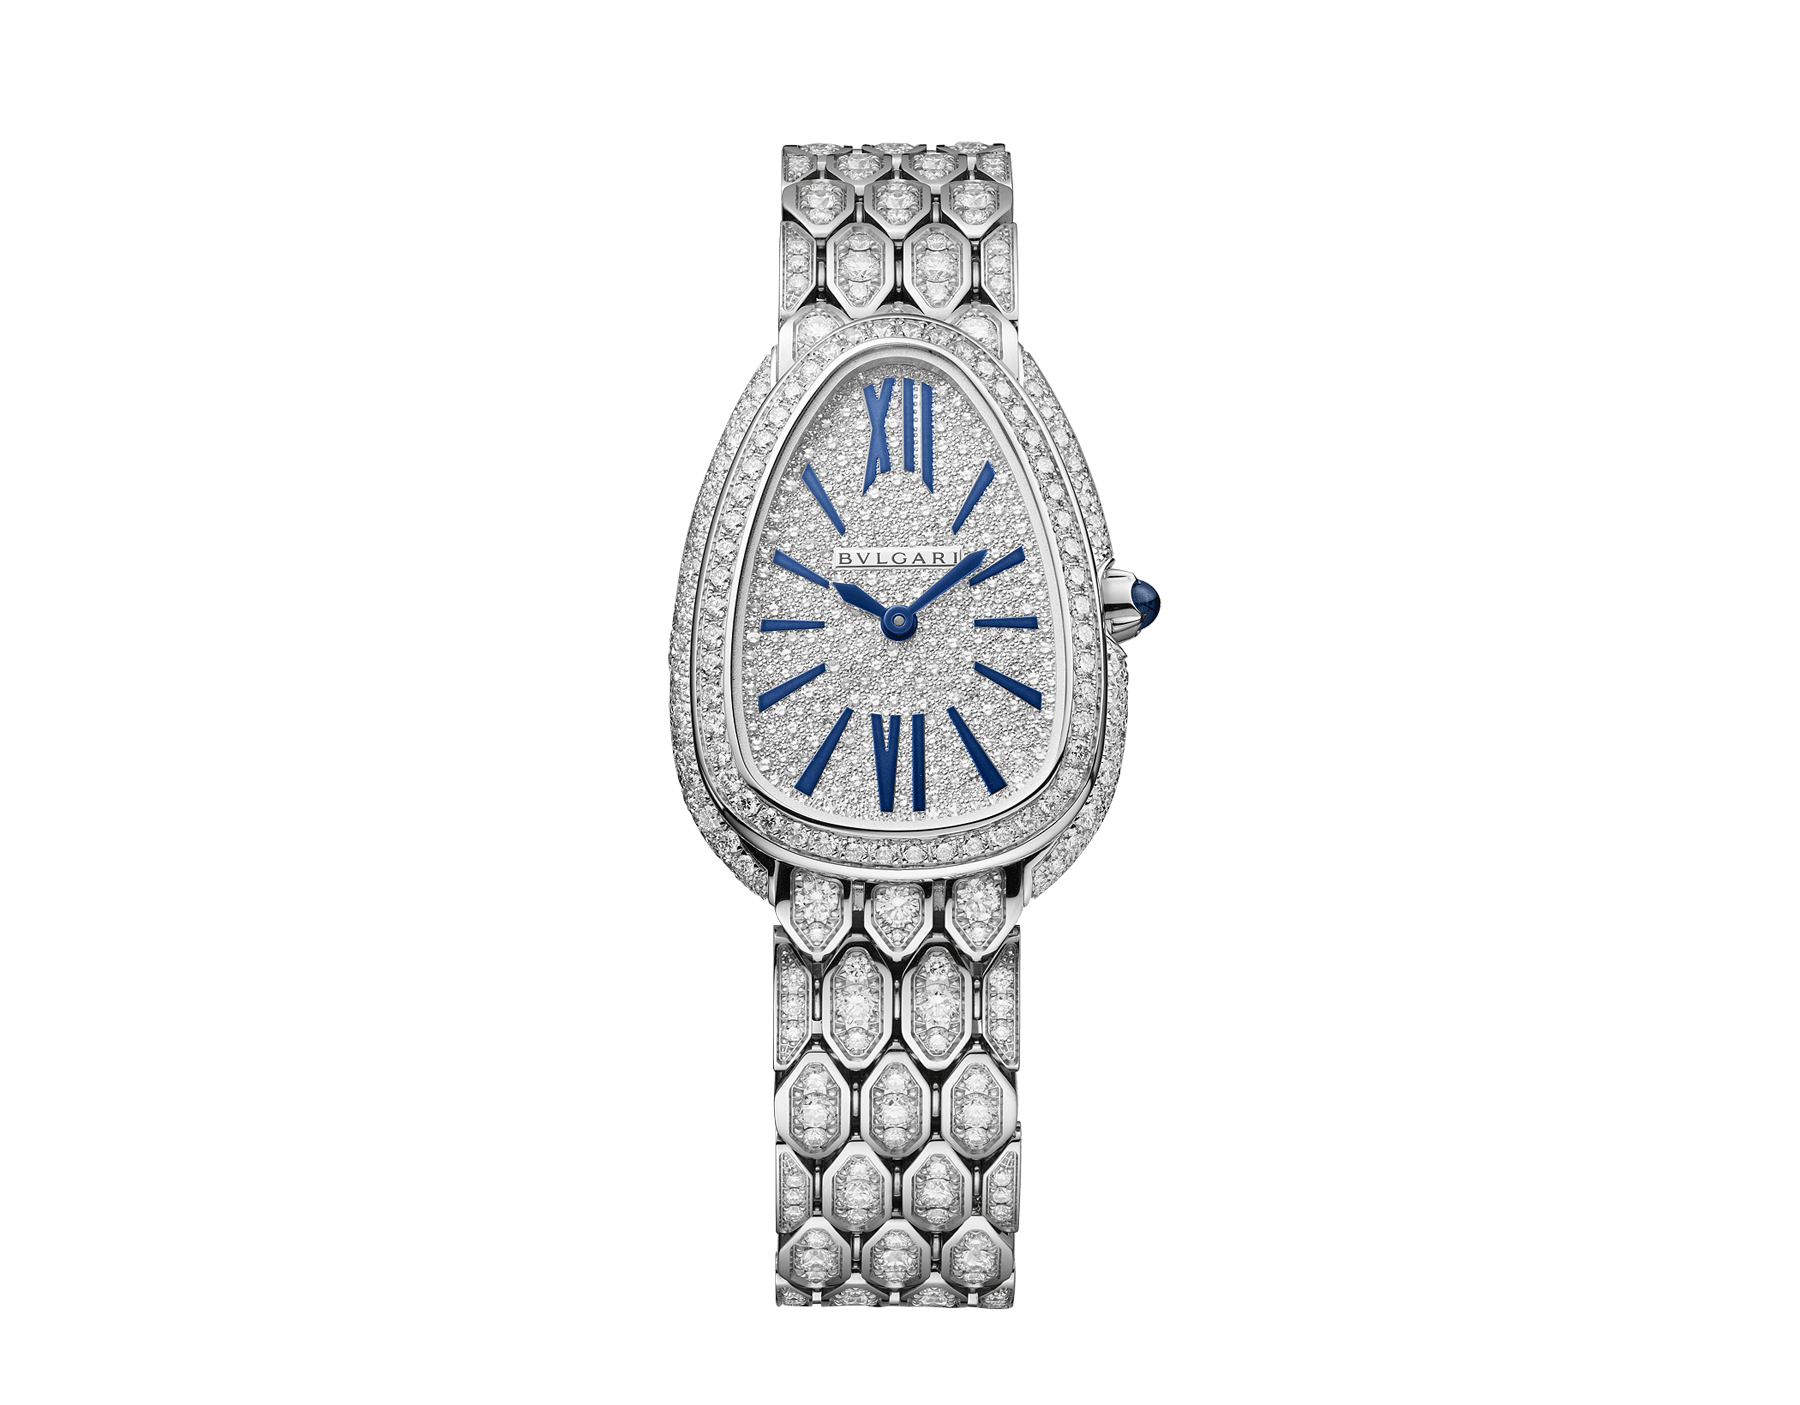 Serpenti Seduttori watch with 18 kt white gold case and bracelet both set with diamonds, full pavé dial and blue hands and indexes 103159 image 1